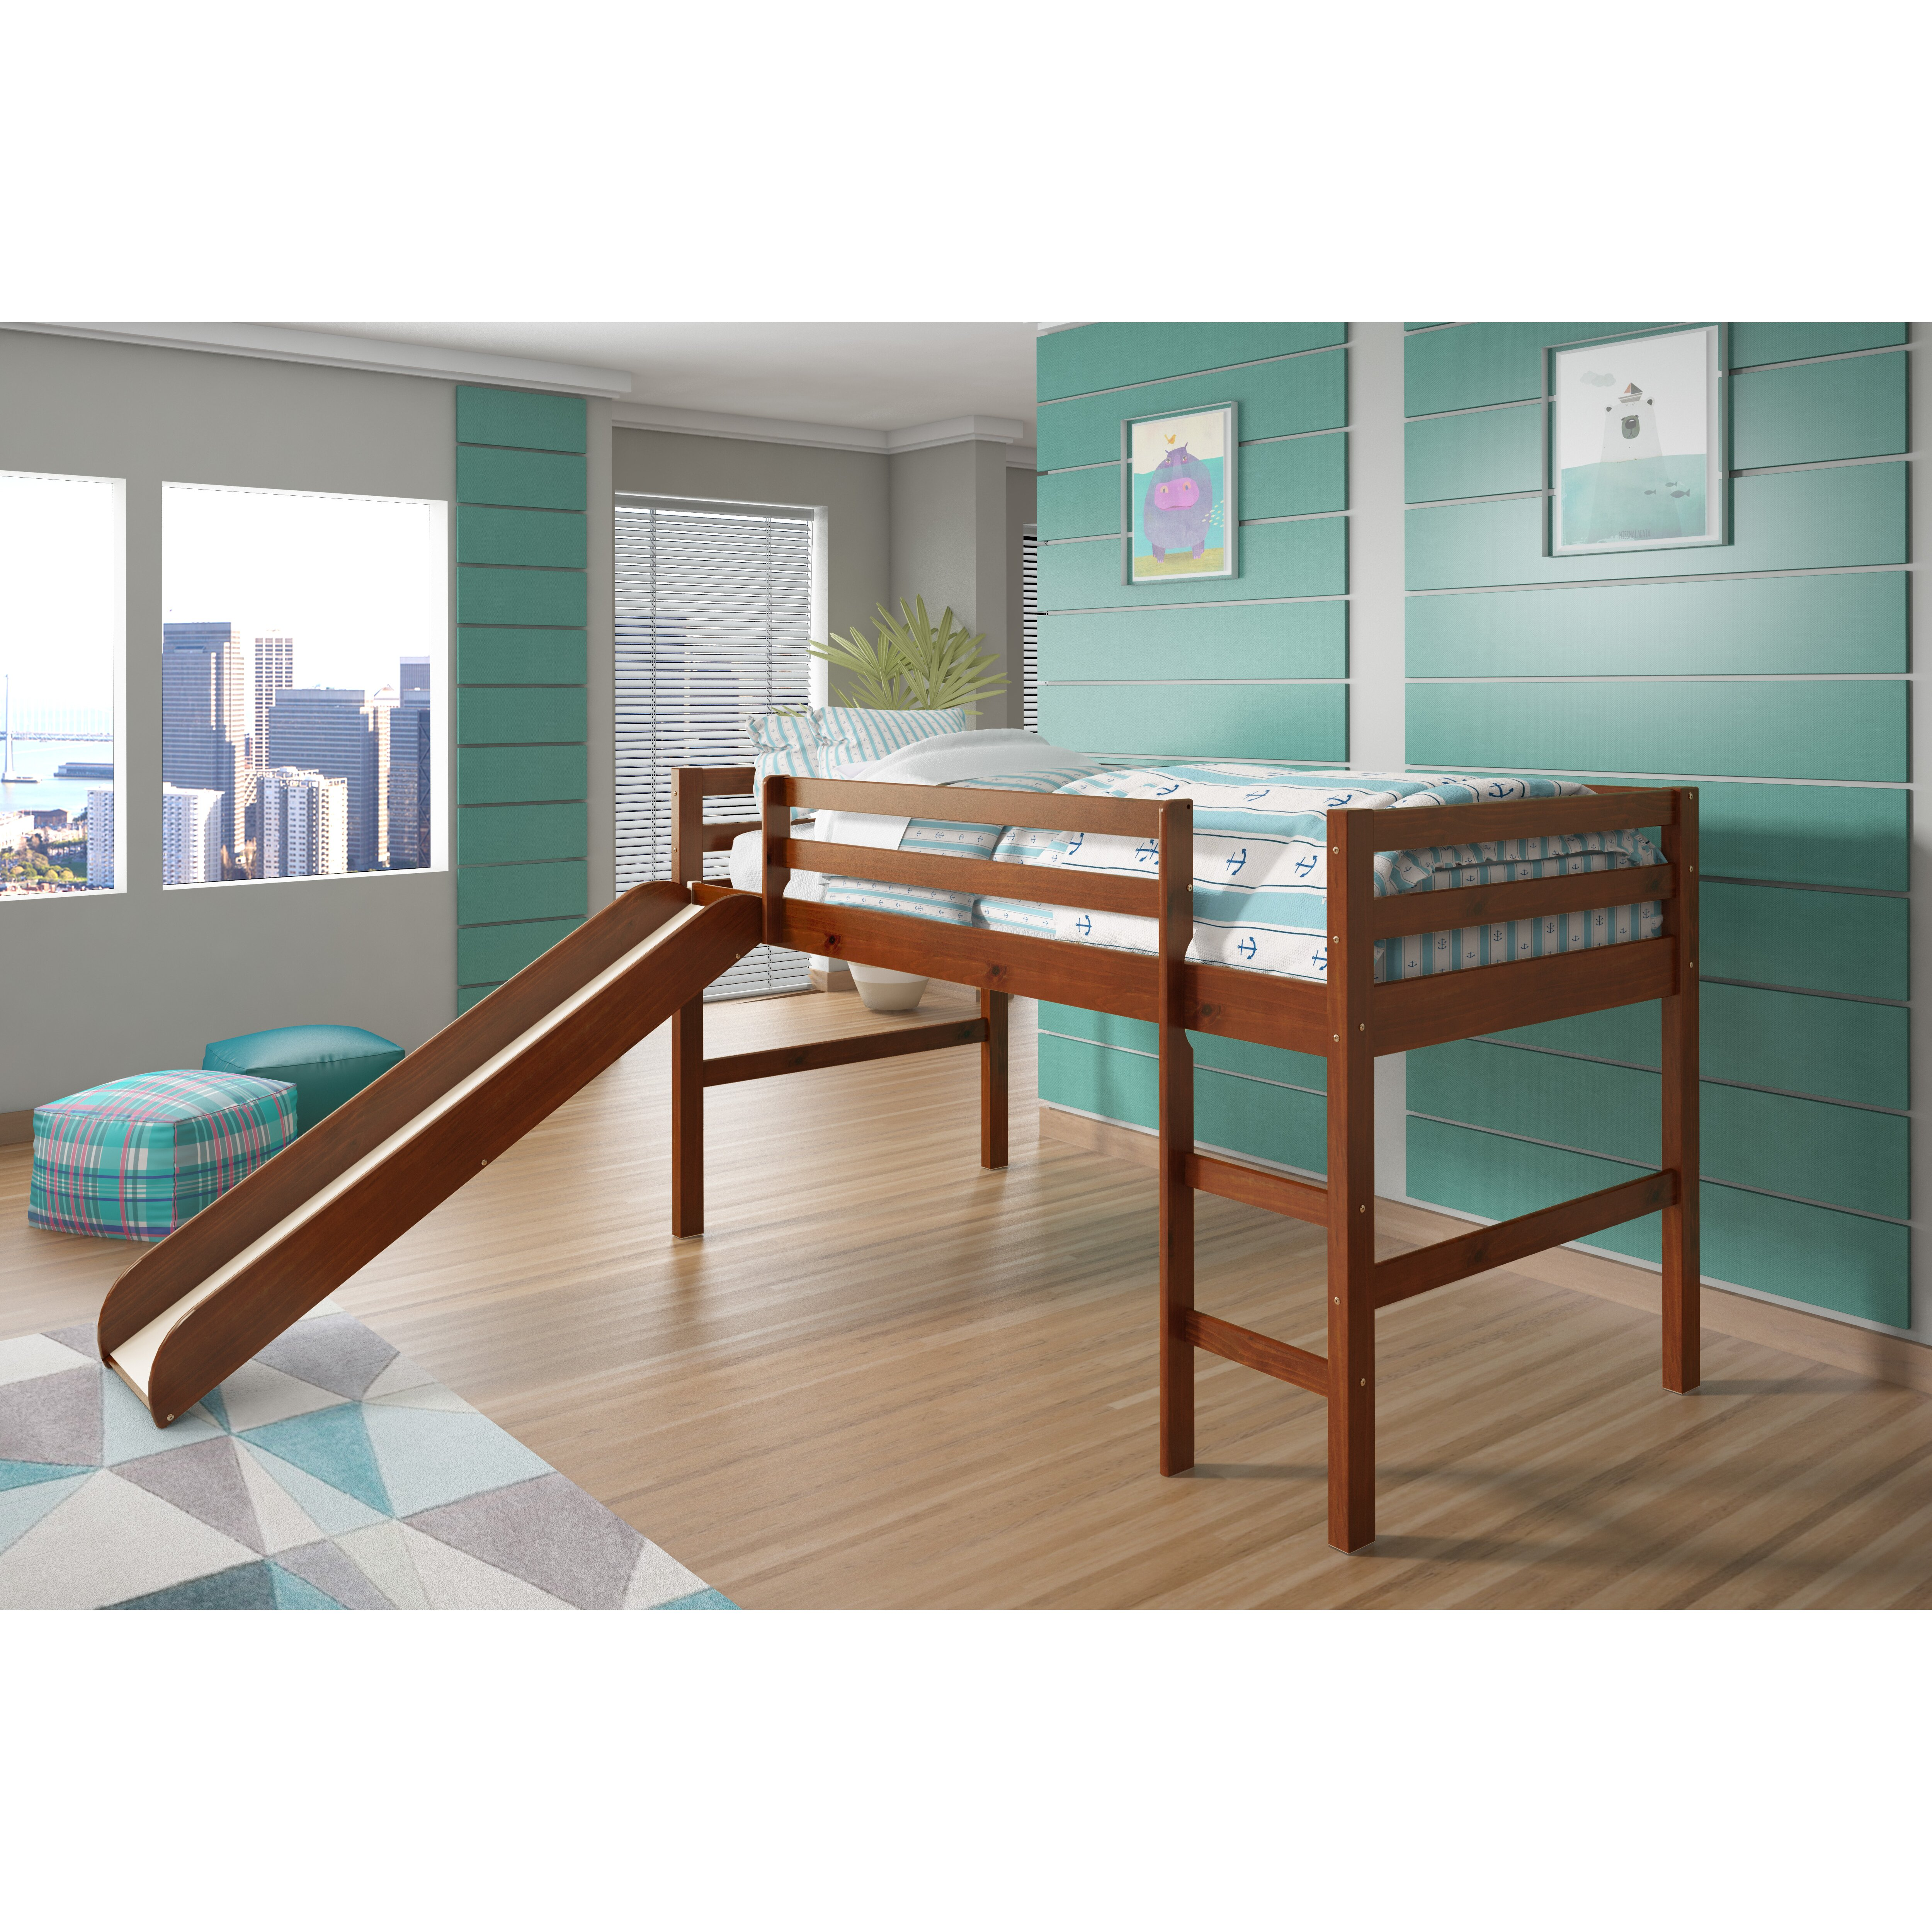 donco kids twin low loft bed reviews wayfair. Black Bedroom Furniture Sets. Home Design Ideas